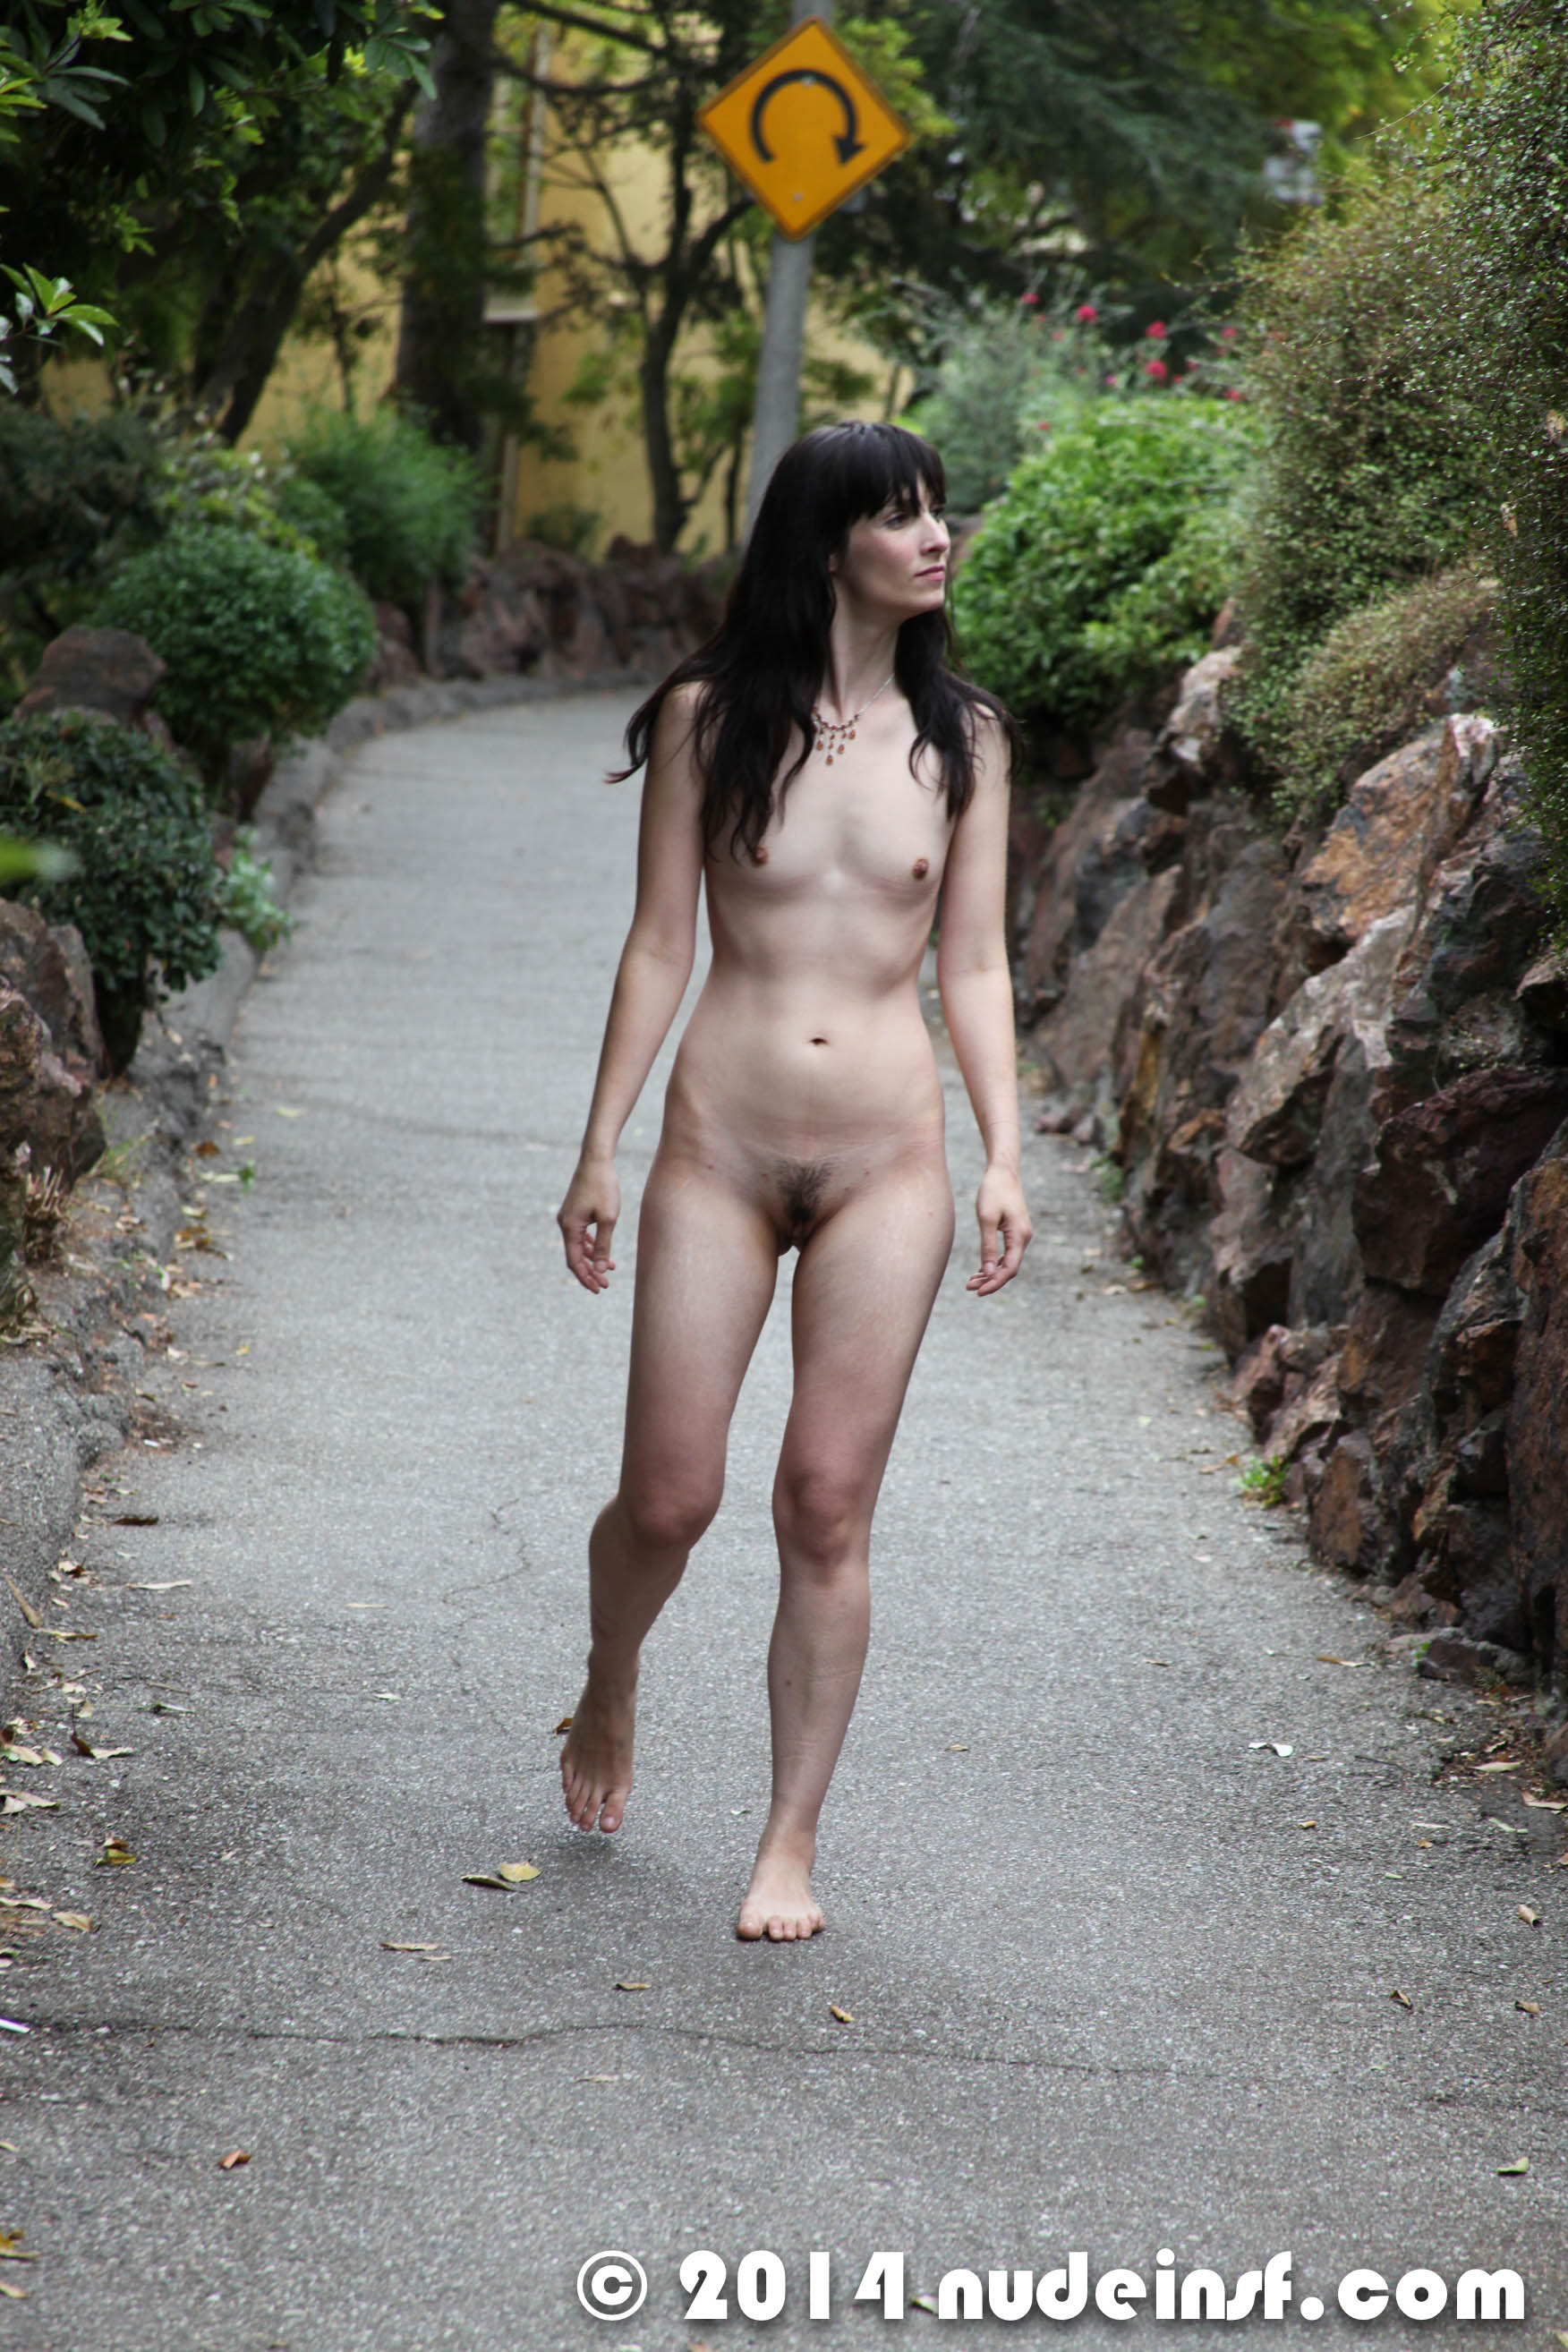 embarrassed-asian-female-california-sexy-girls